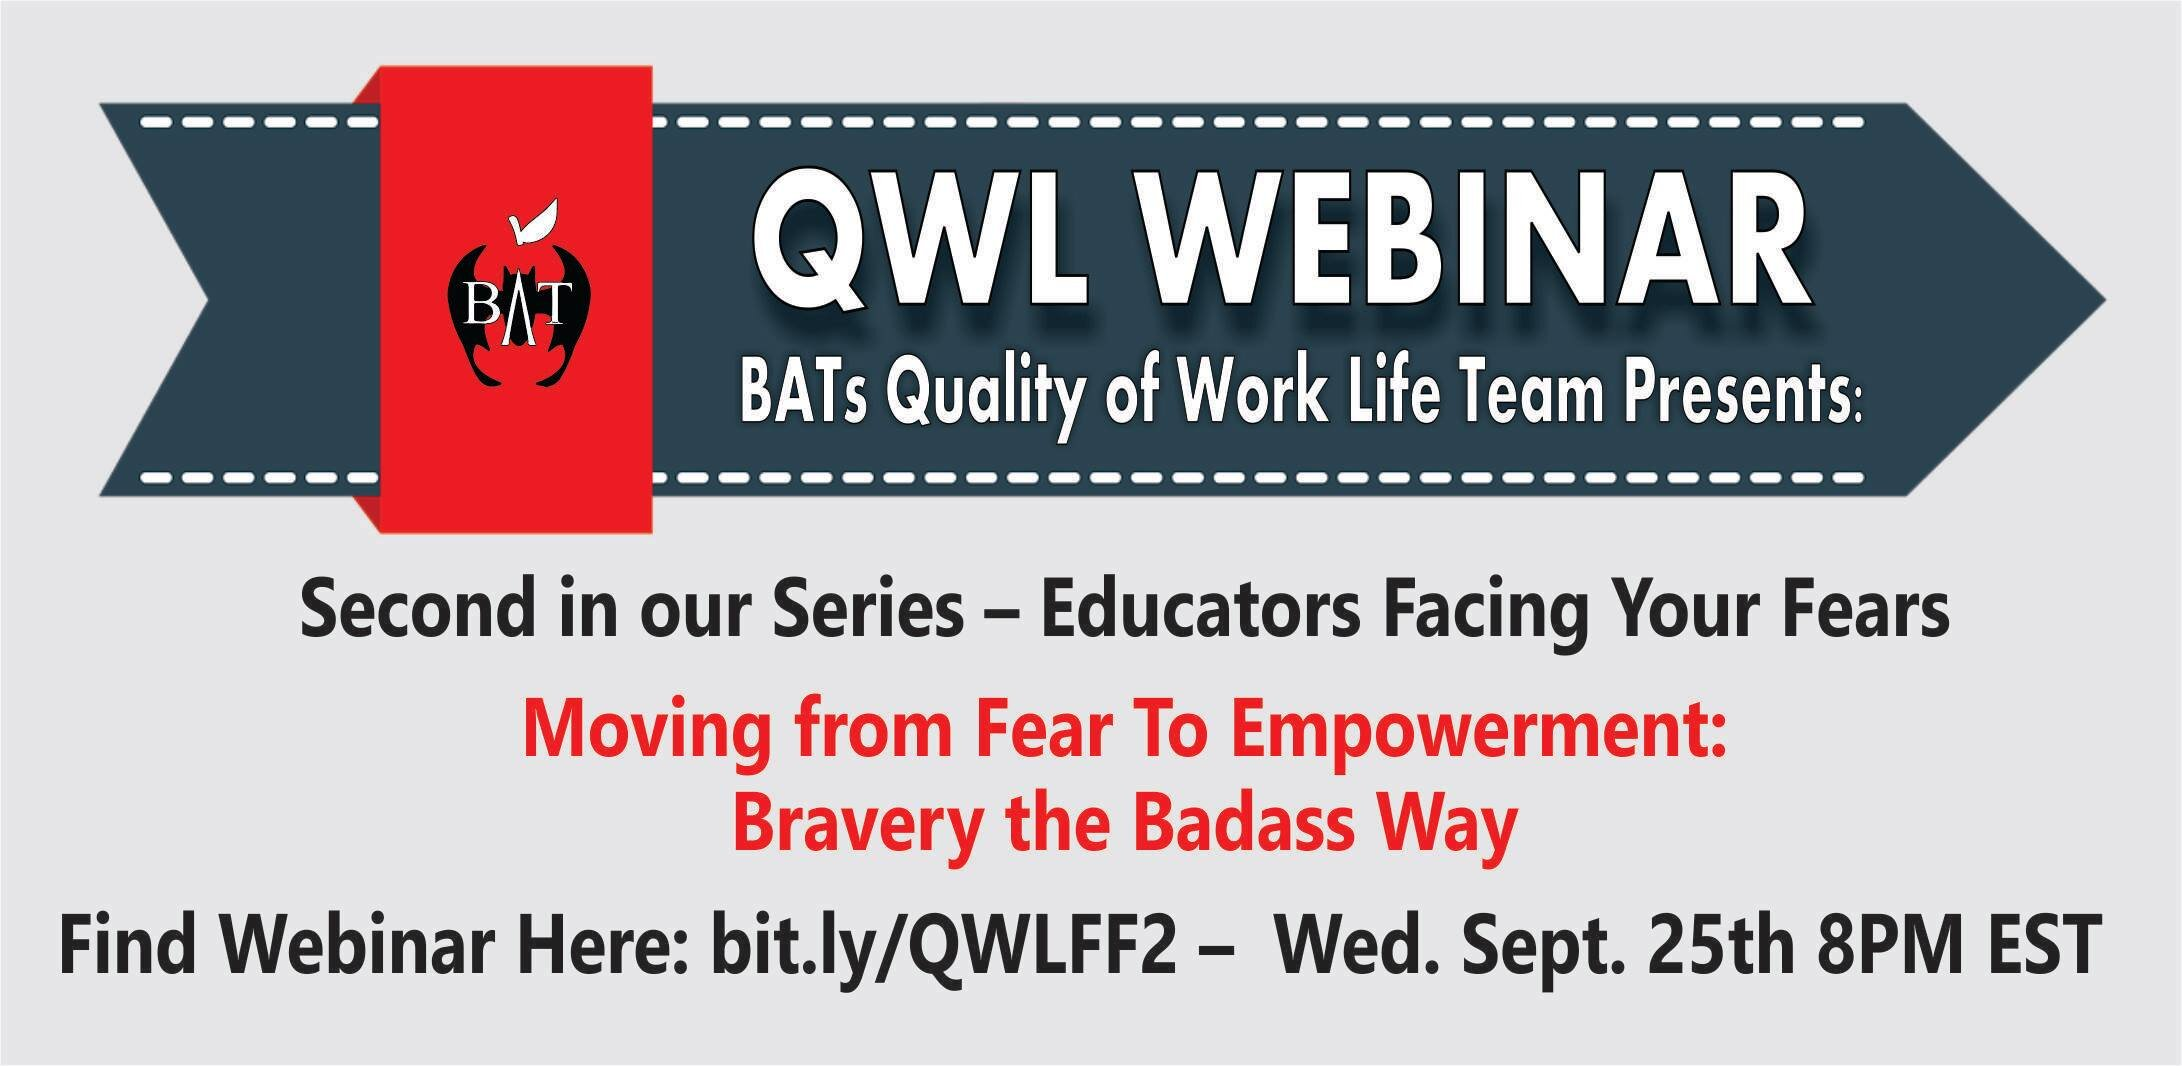 """Our BAT Quality of Work Life team is hosting their second webinar """"Bravery the Badass Way!""""  Join us to learn from others that have moved from fear to empowerment and discuss ways that you can to!  Sign up to receive the webinar link!  Bit.ly/QWLFF2"""